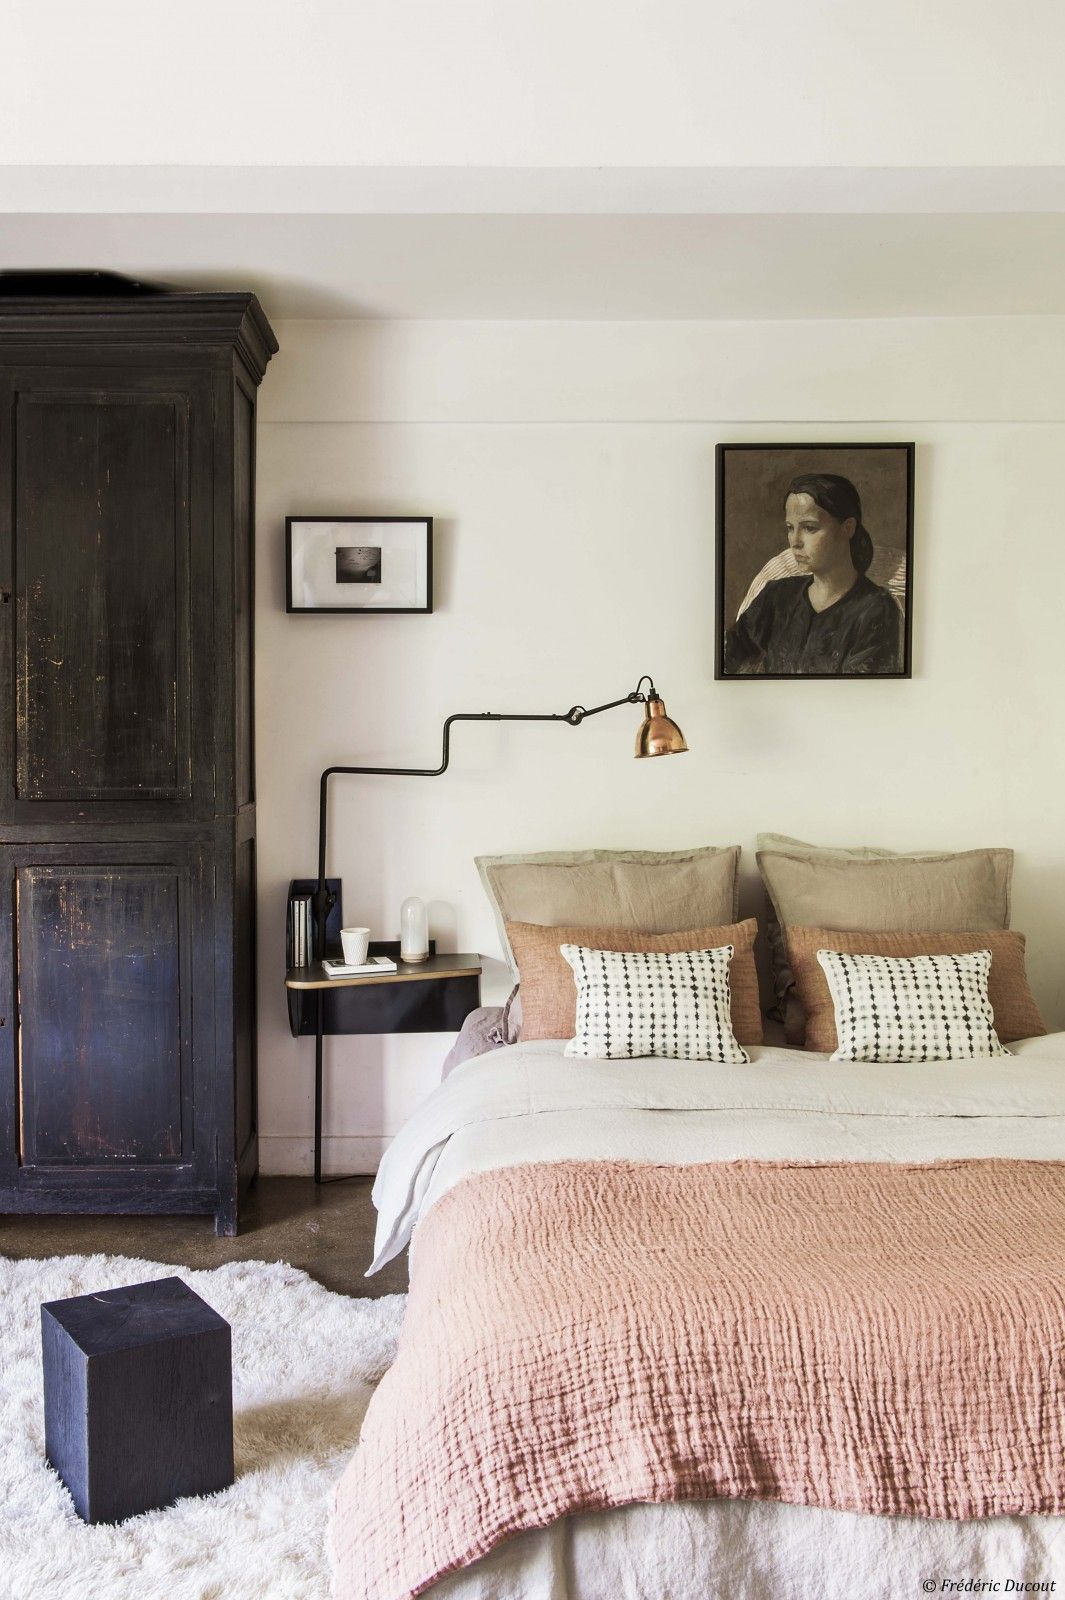 Tones of blush and creams combine with dark wood for a soothing